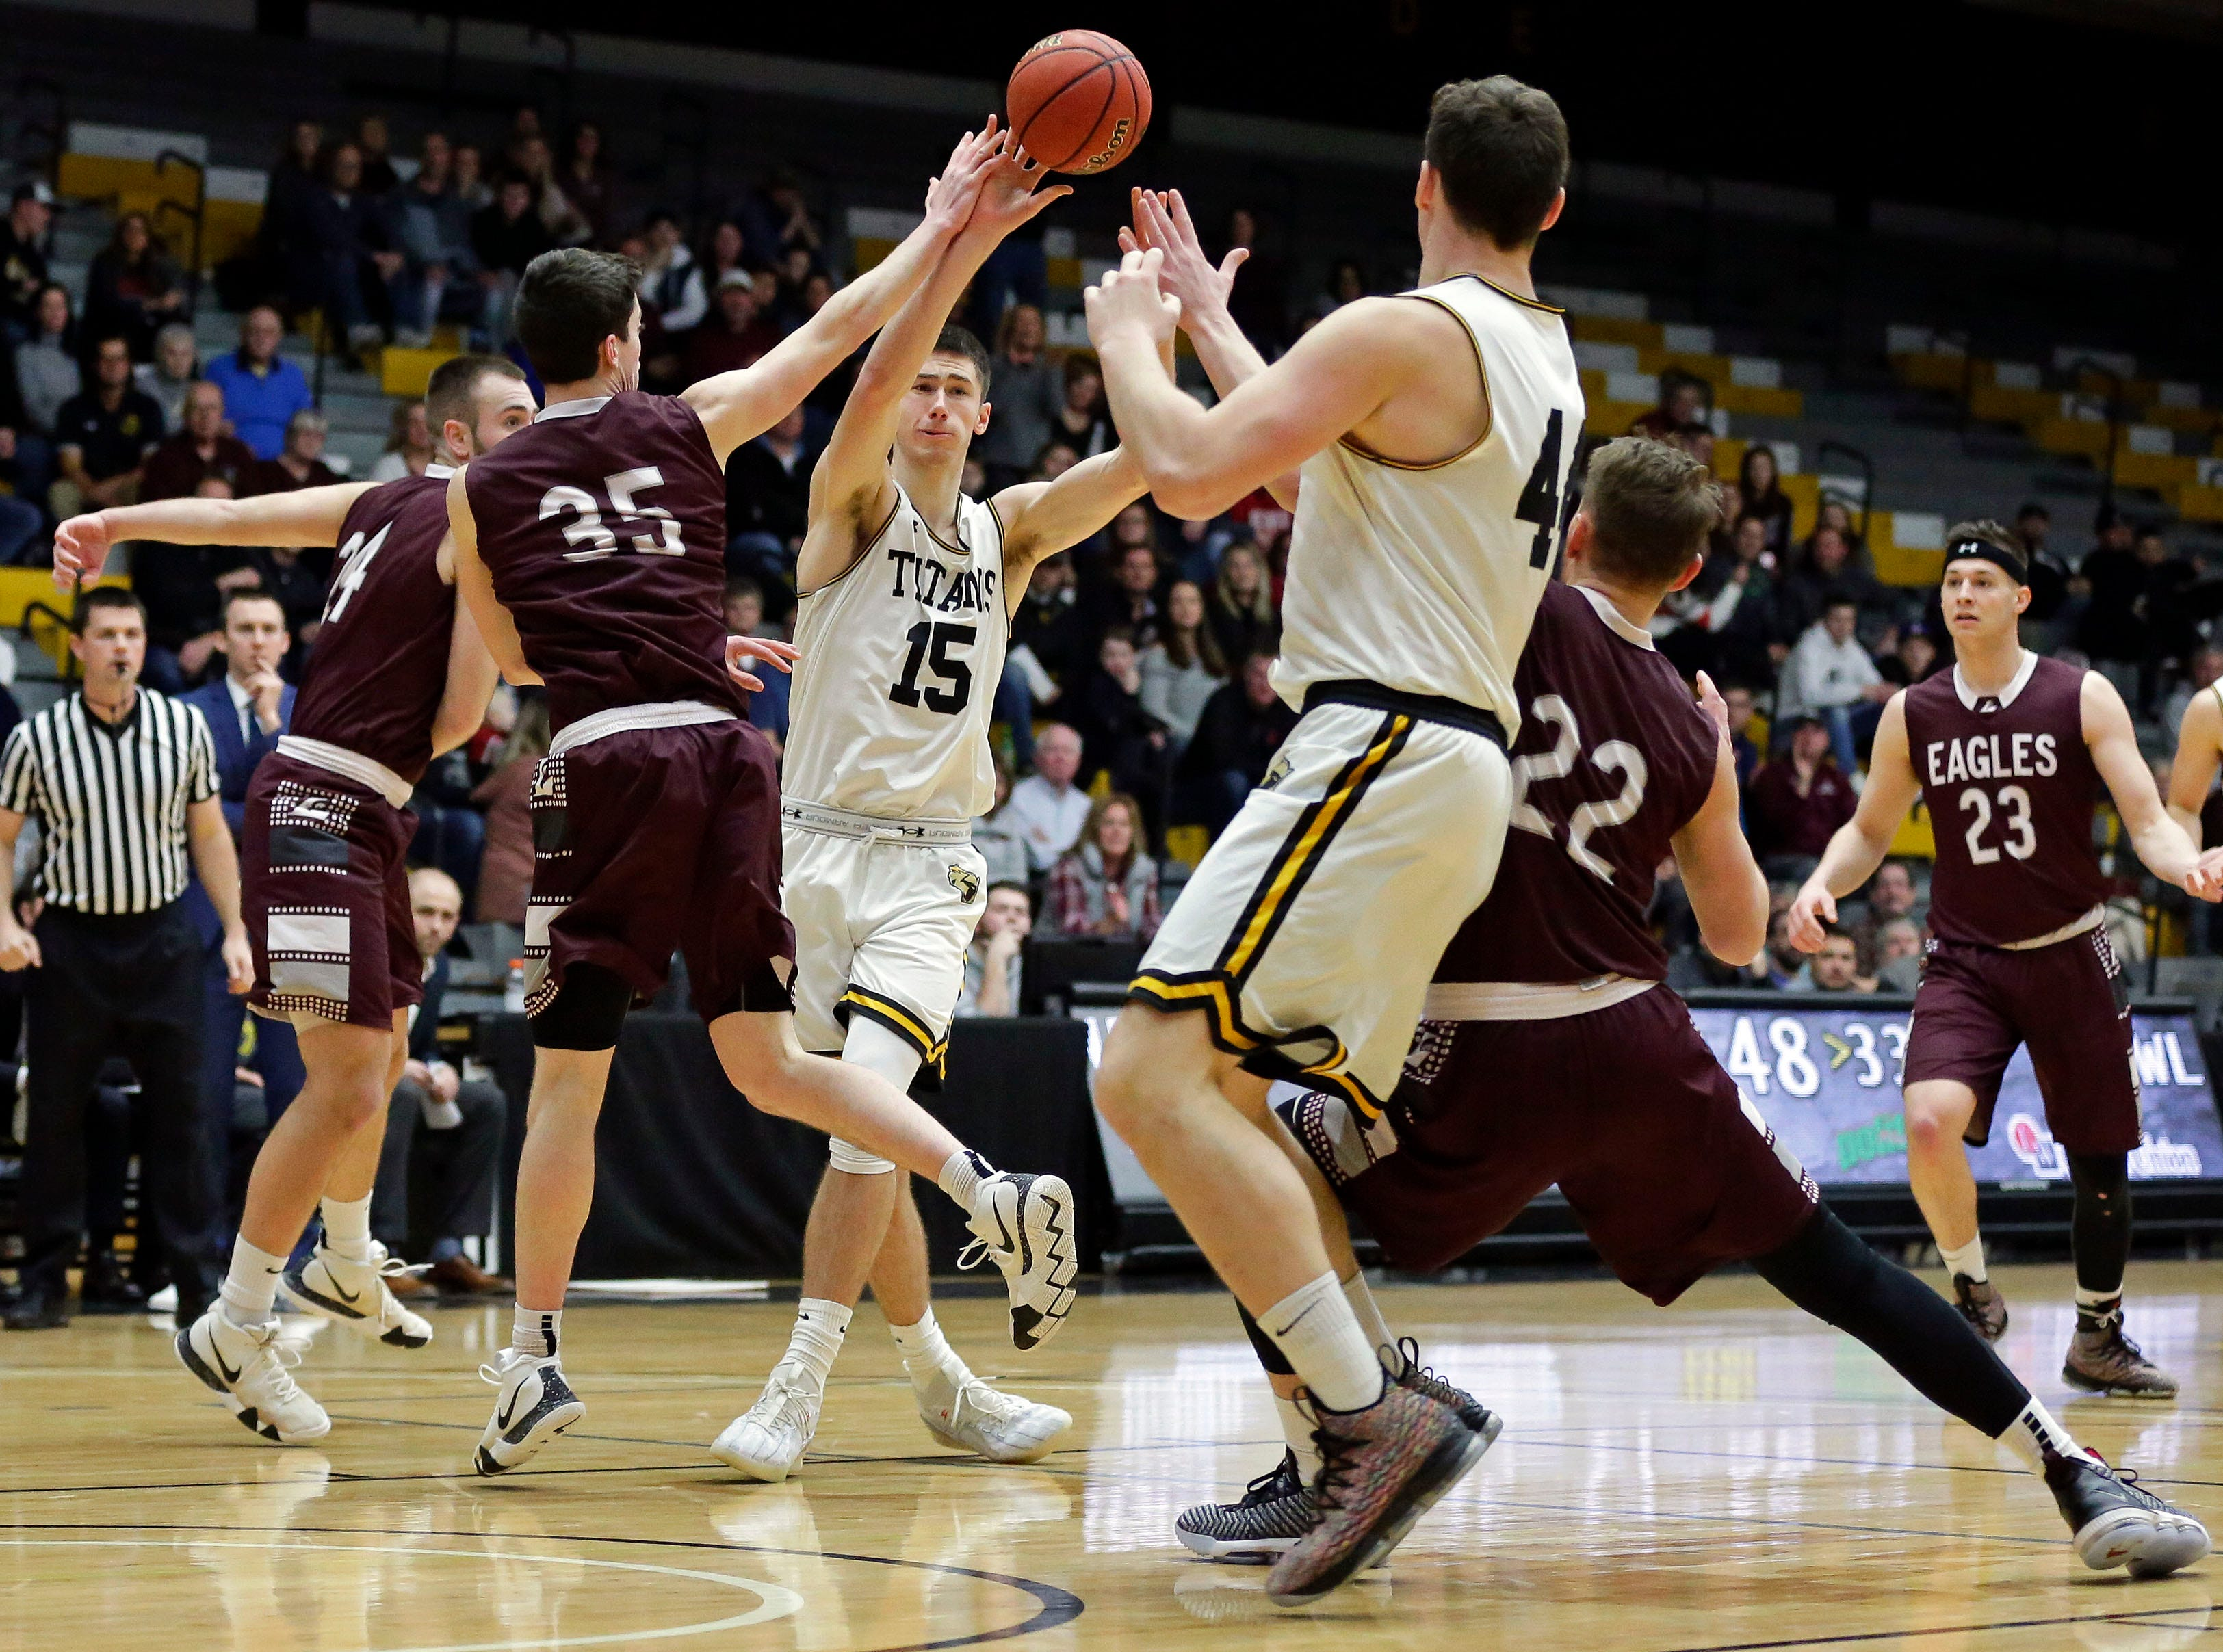 Adam Fravert feeds Jack Flynn of UW-Oshkosh as the Titans take on UW-La Crosse in Wisconsin Intercollegiate Athletic Conference basketball Saturday, January 19, 2019, at Kolf Sports Center in Oshkosh, Wis. 